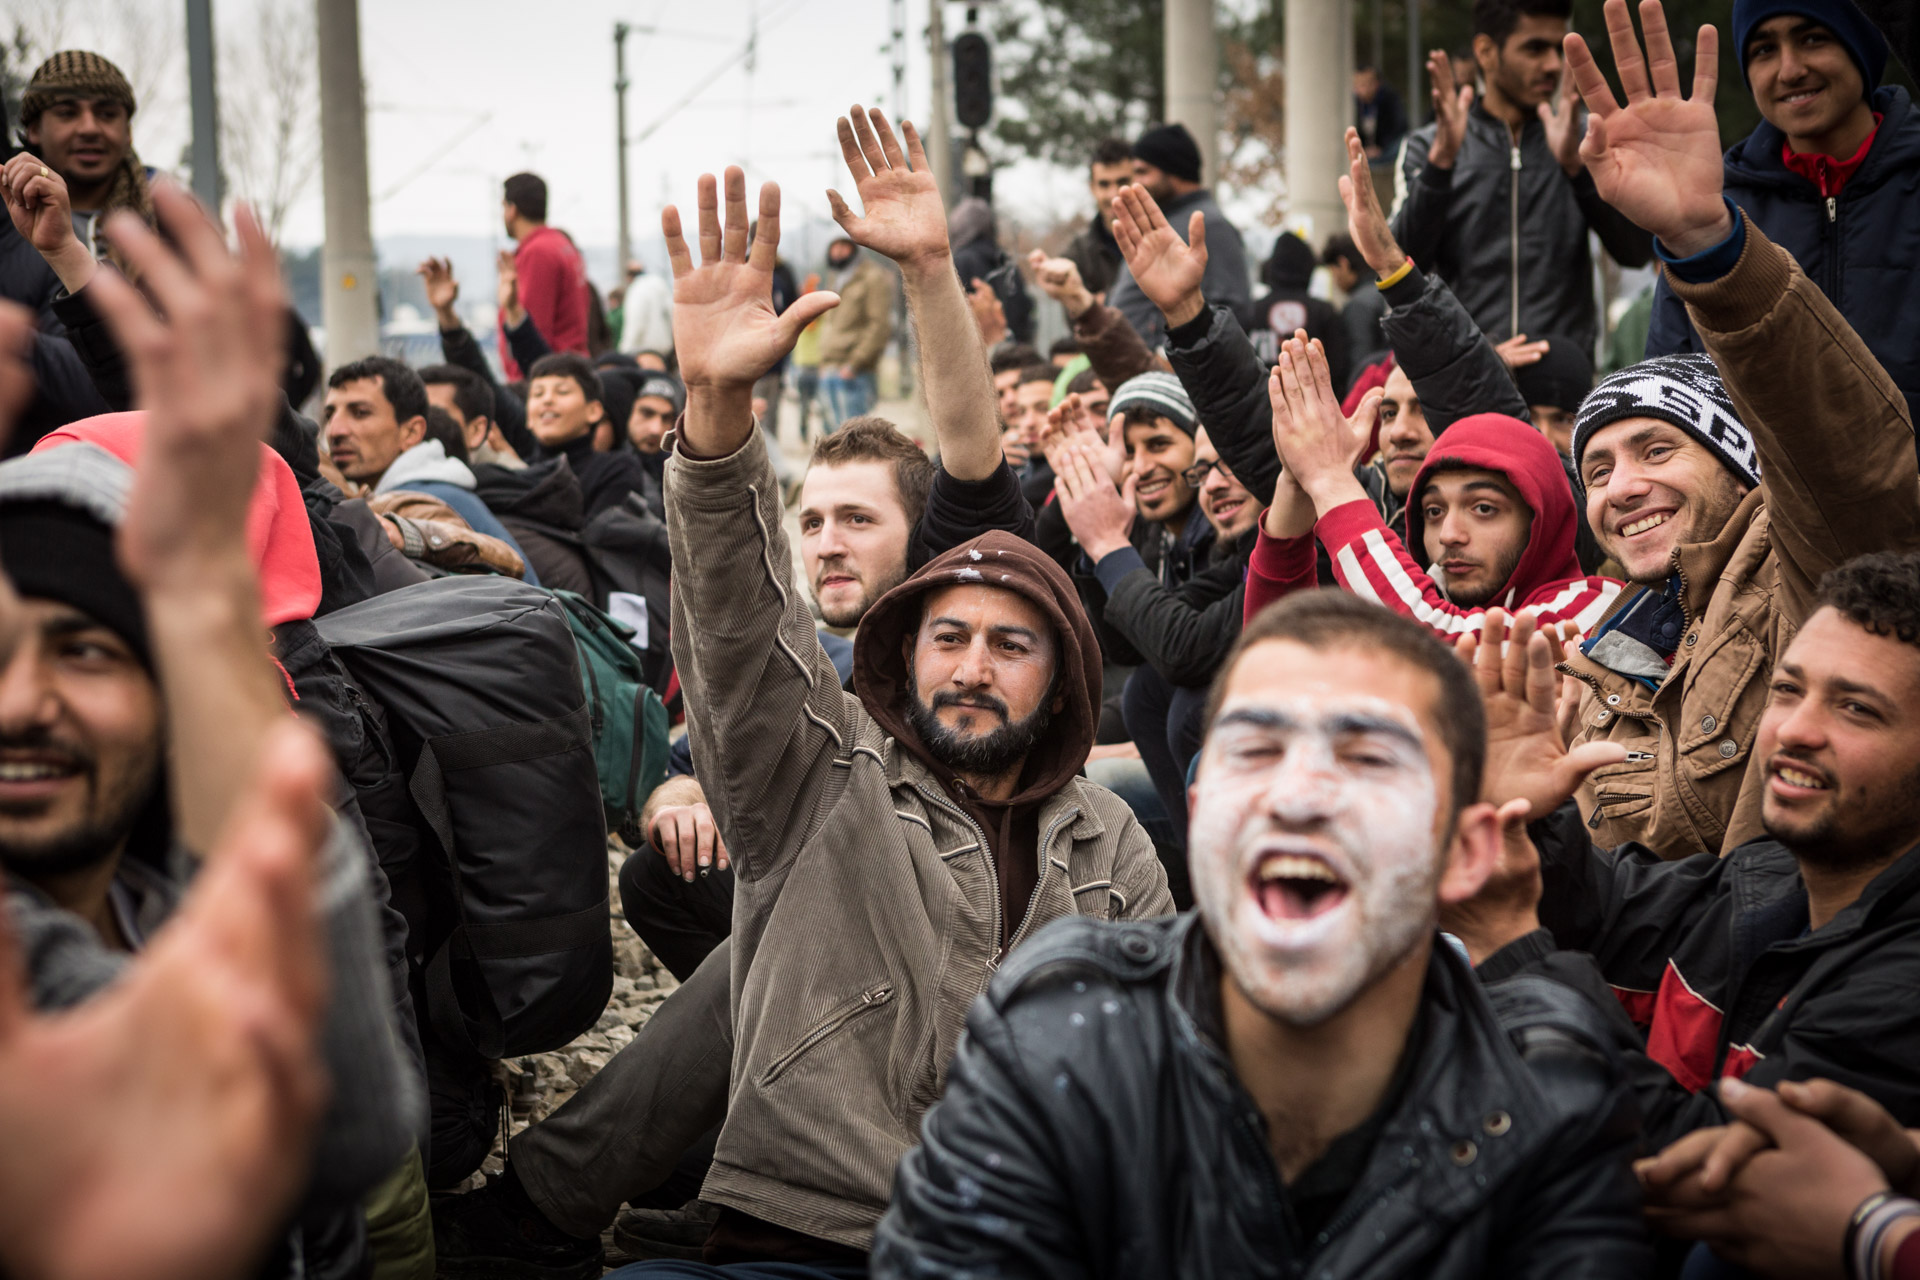 Basem takes part in a vote during another protest for the opening of the border. Earlier this day, they have been tear-gassed by Macedonian border police, trying to cross the border.